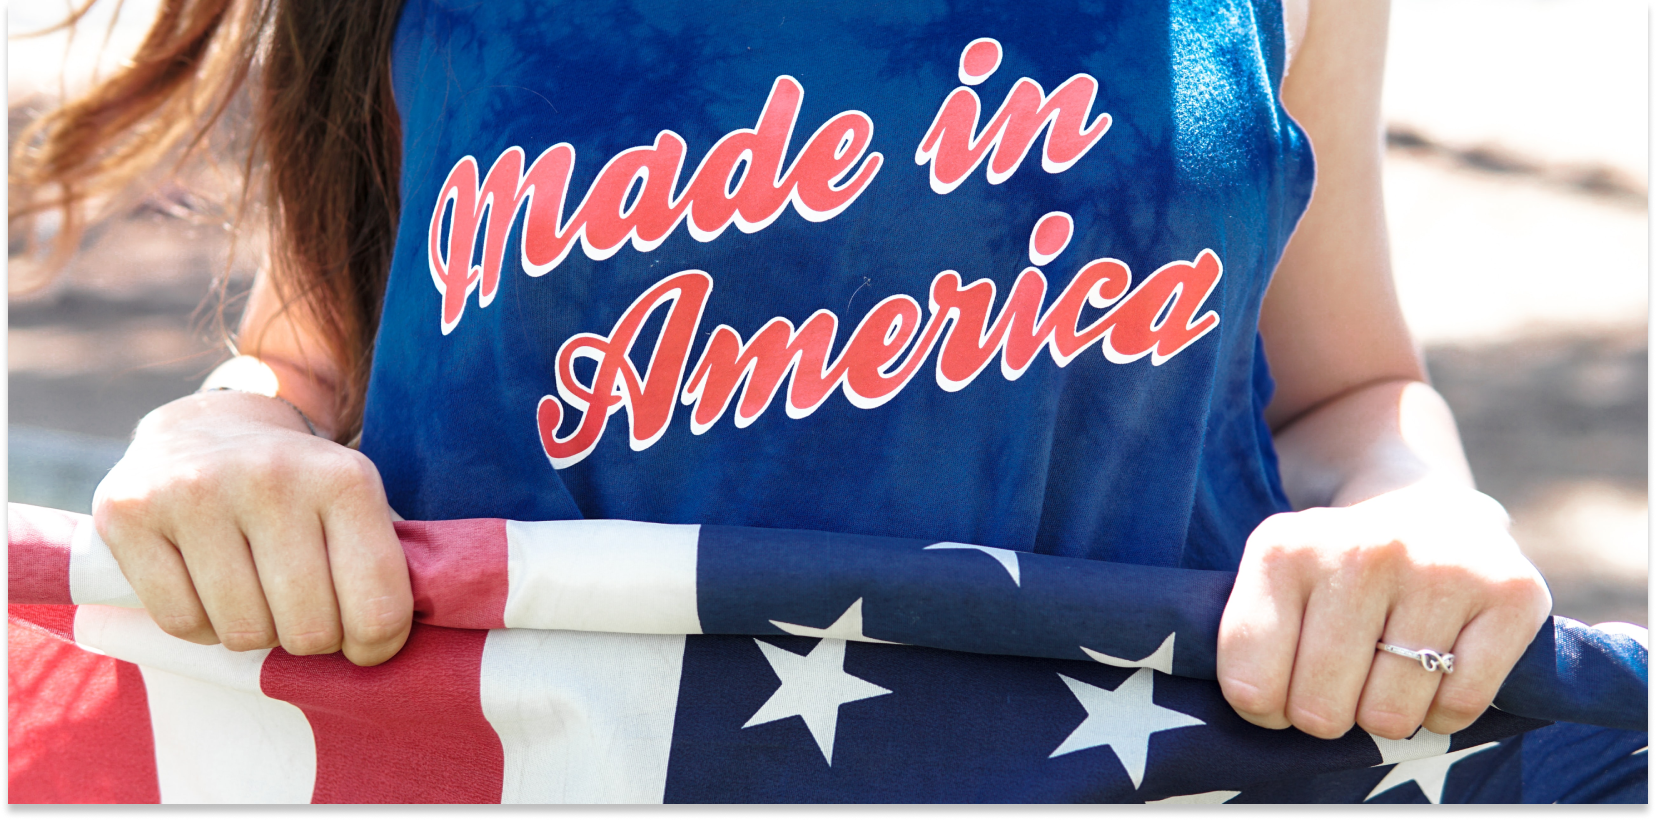 Best selling design ideas for 4th of July t-shirts in 2020